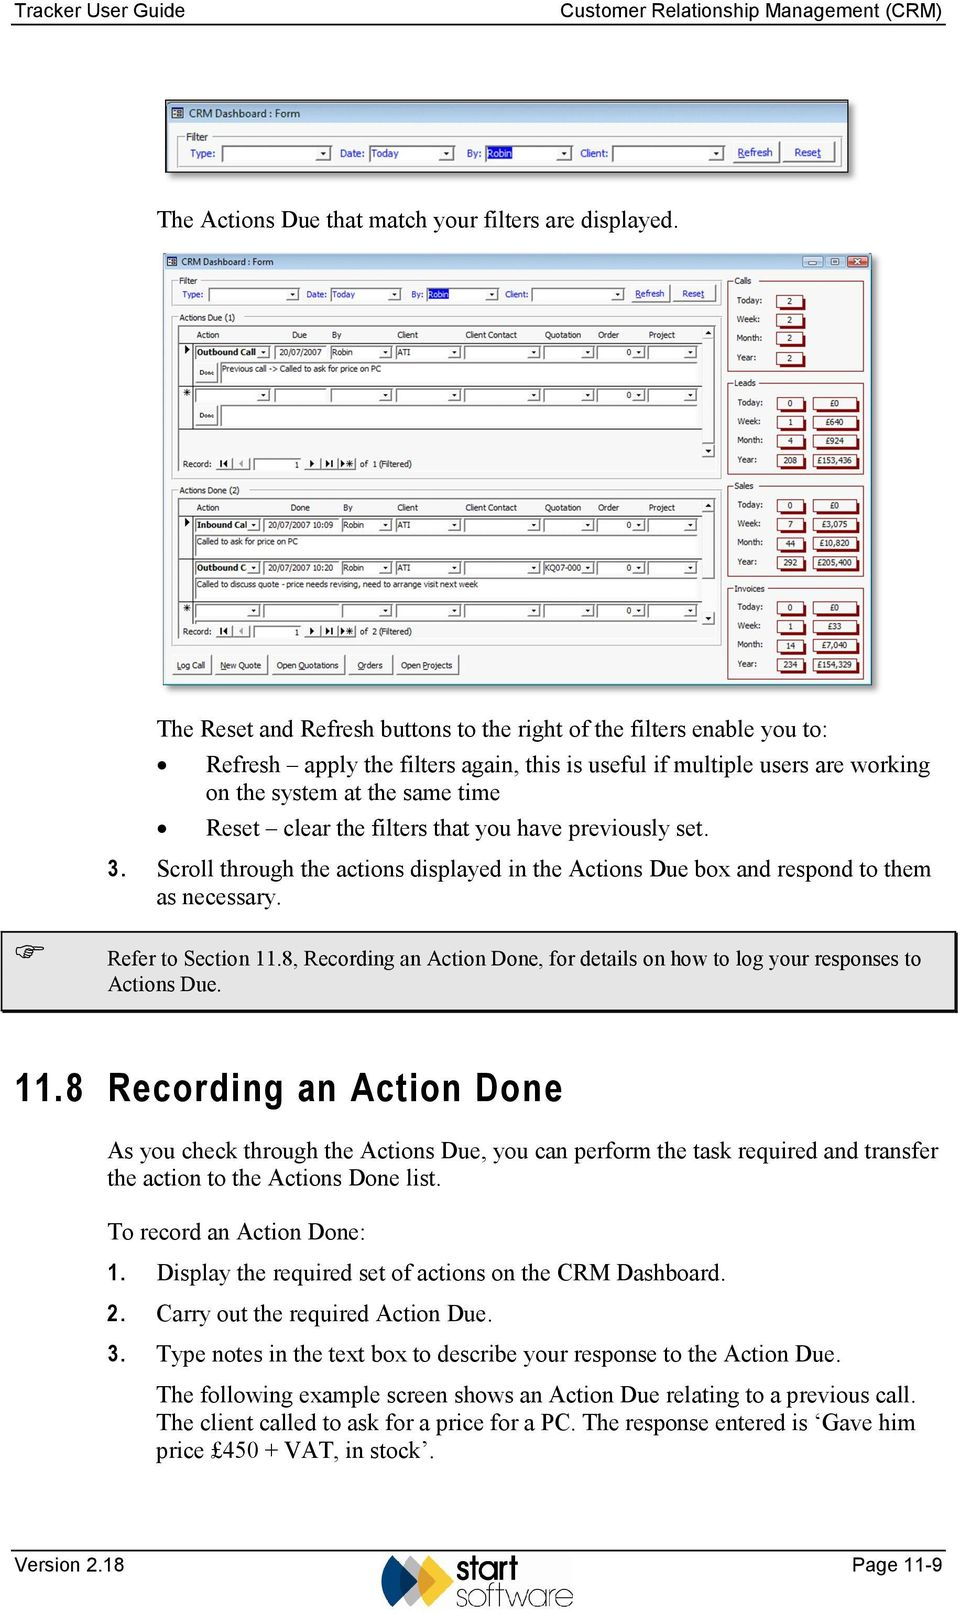 filters that you have previously set. 3. Scroll through the actions displayed in the Actions Due box and respond to them as necessary. Refer to Section 11.